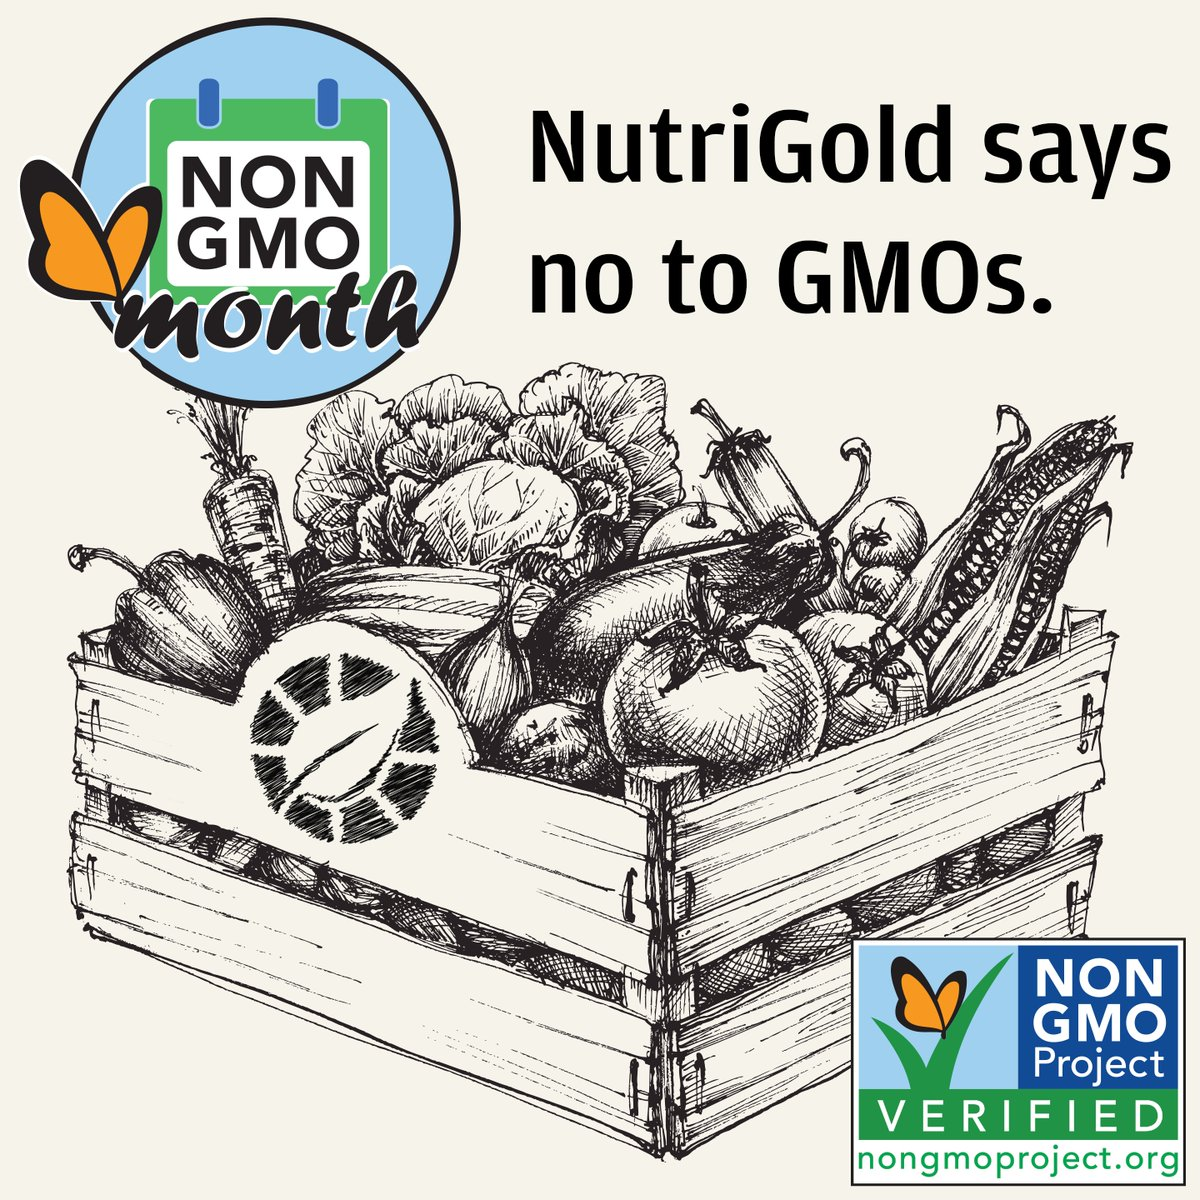 Happy Non-GMO Month! 100% of NutriGold products are verified non-GMO either through the Non-GMO Project­™ or through a combination of supply chain verification and real-time, qualitative and quantitative PCR testing. https://t.co/QnZgNUm9Kt